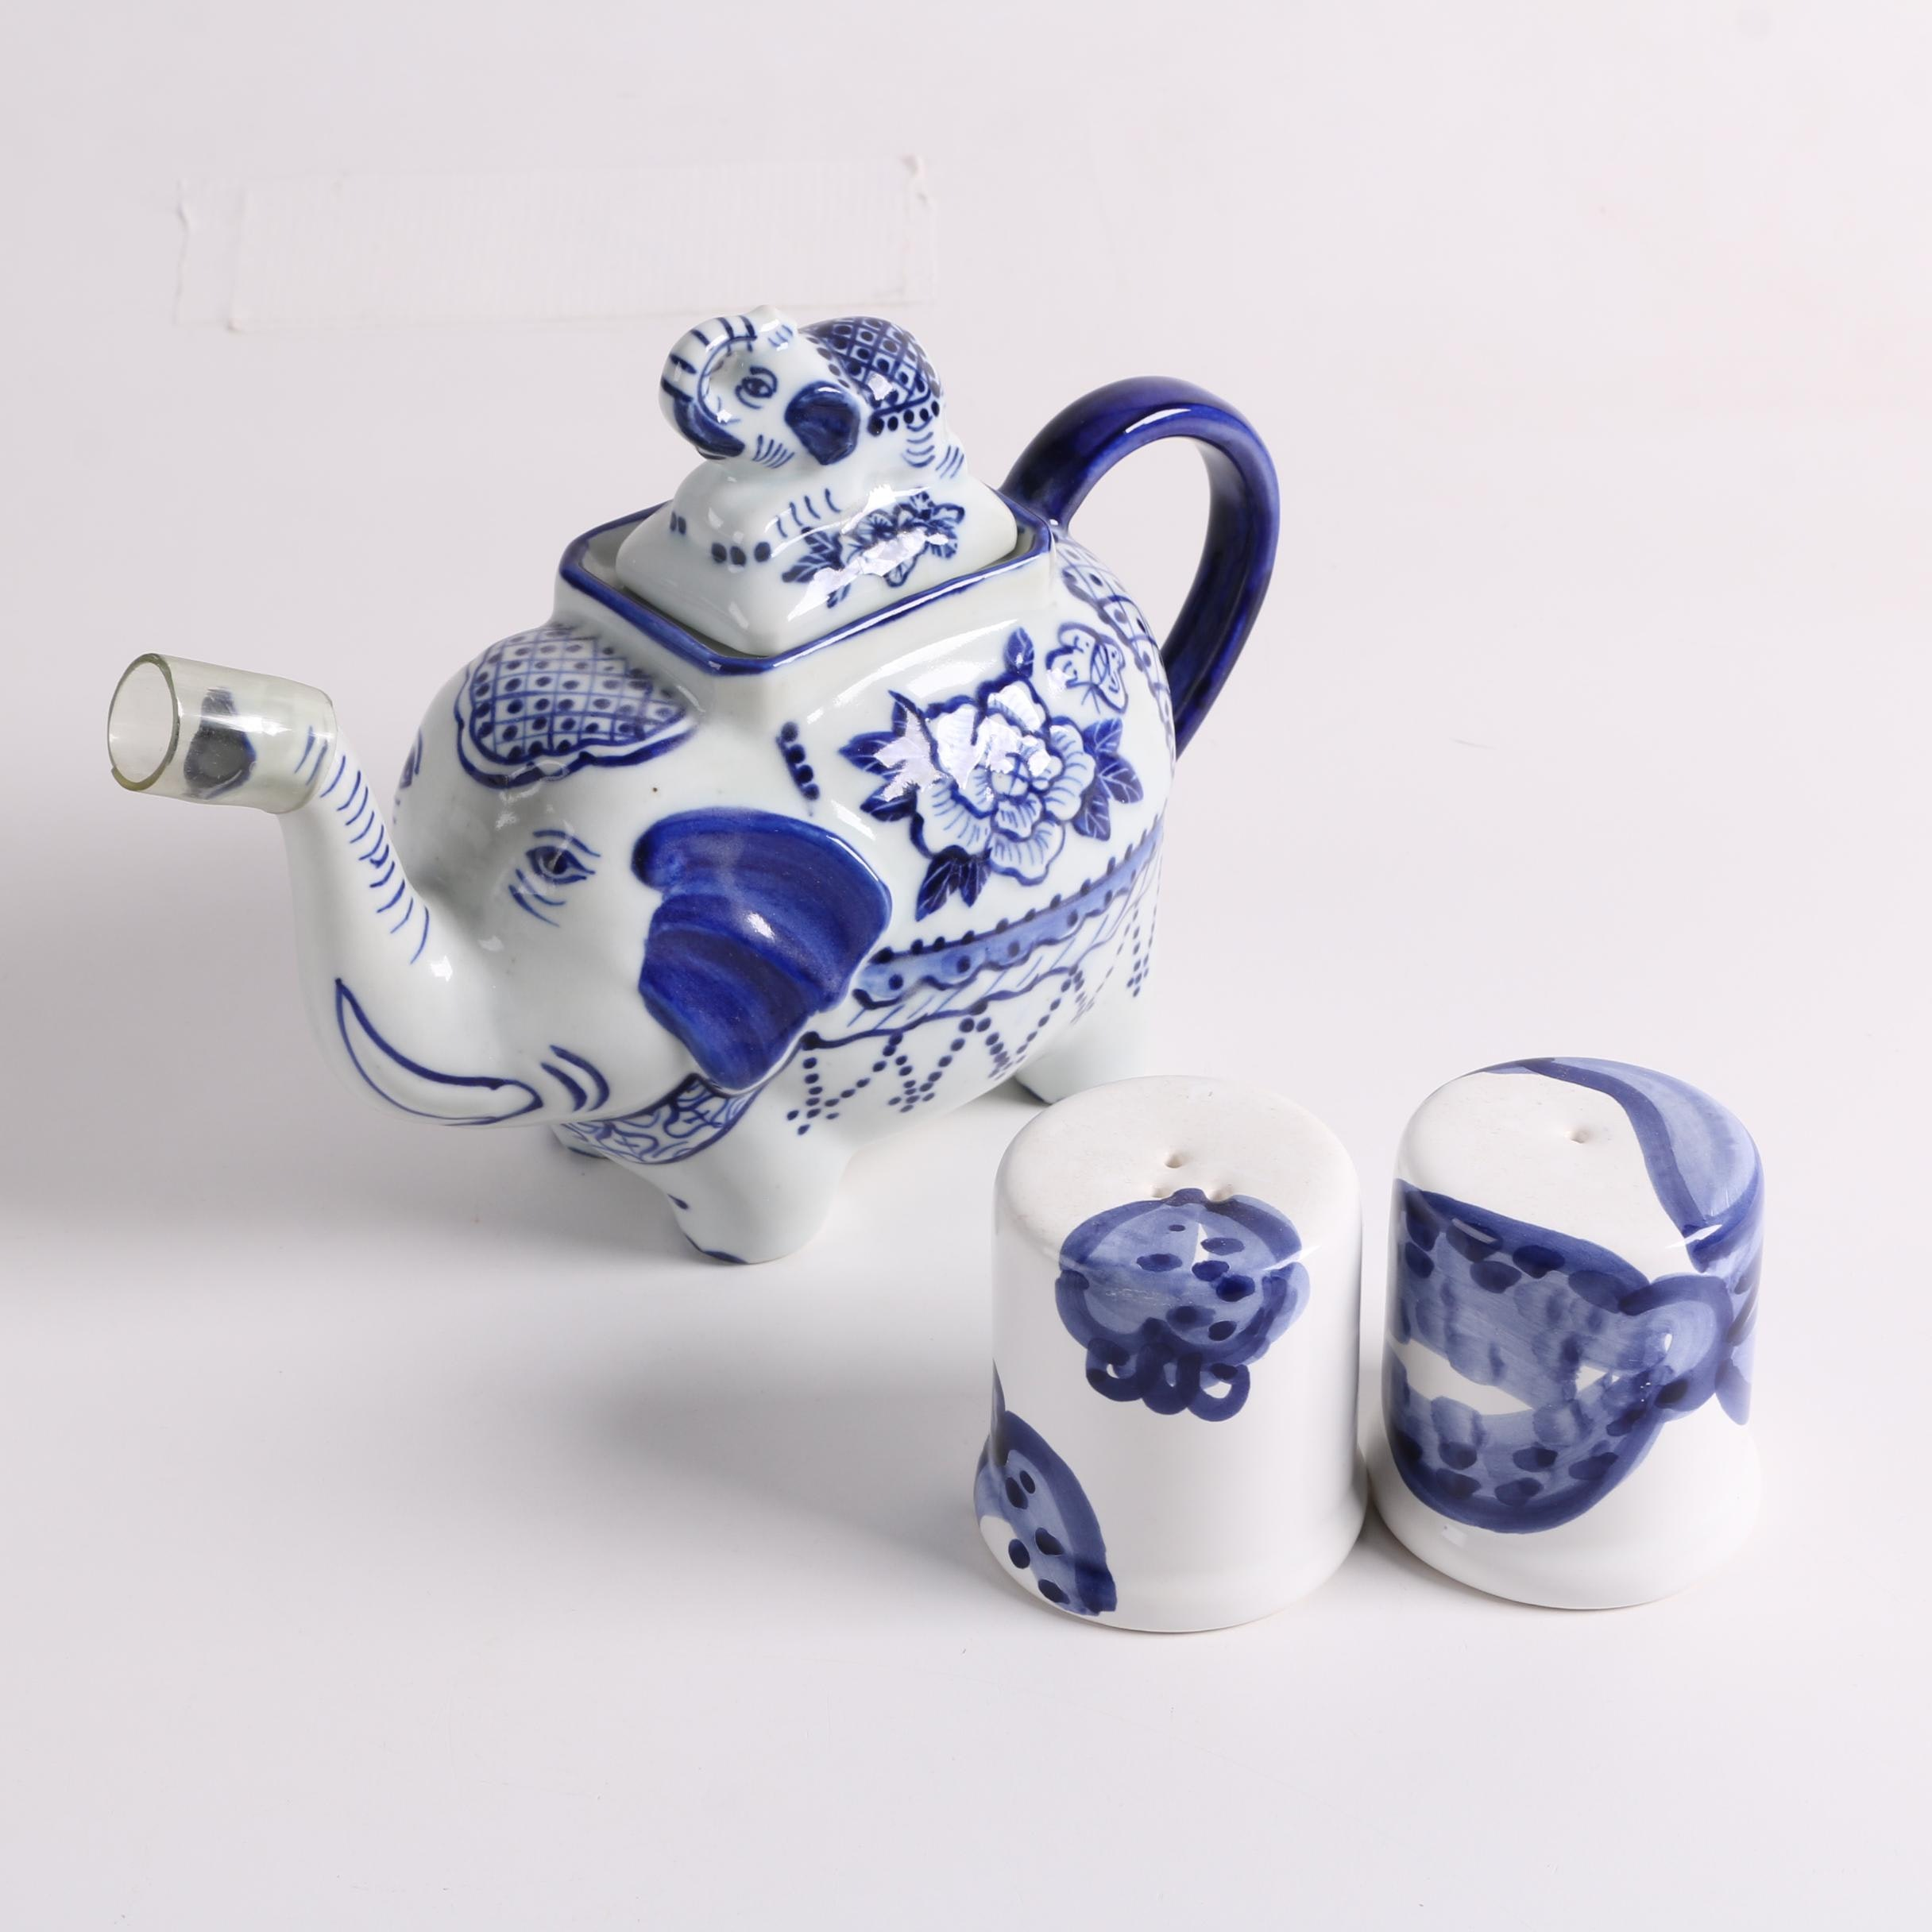 Thai Blue and White Elephant Ceramic Teapot with Shakers